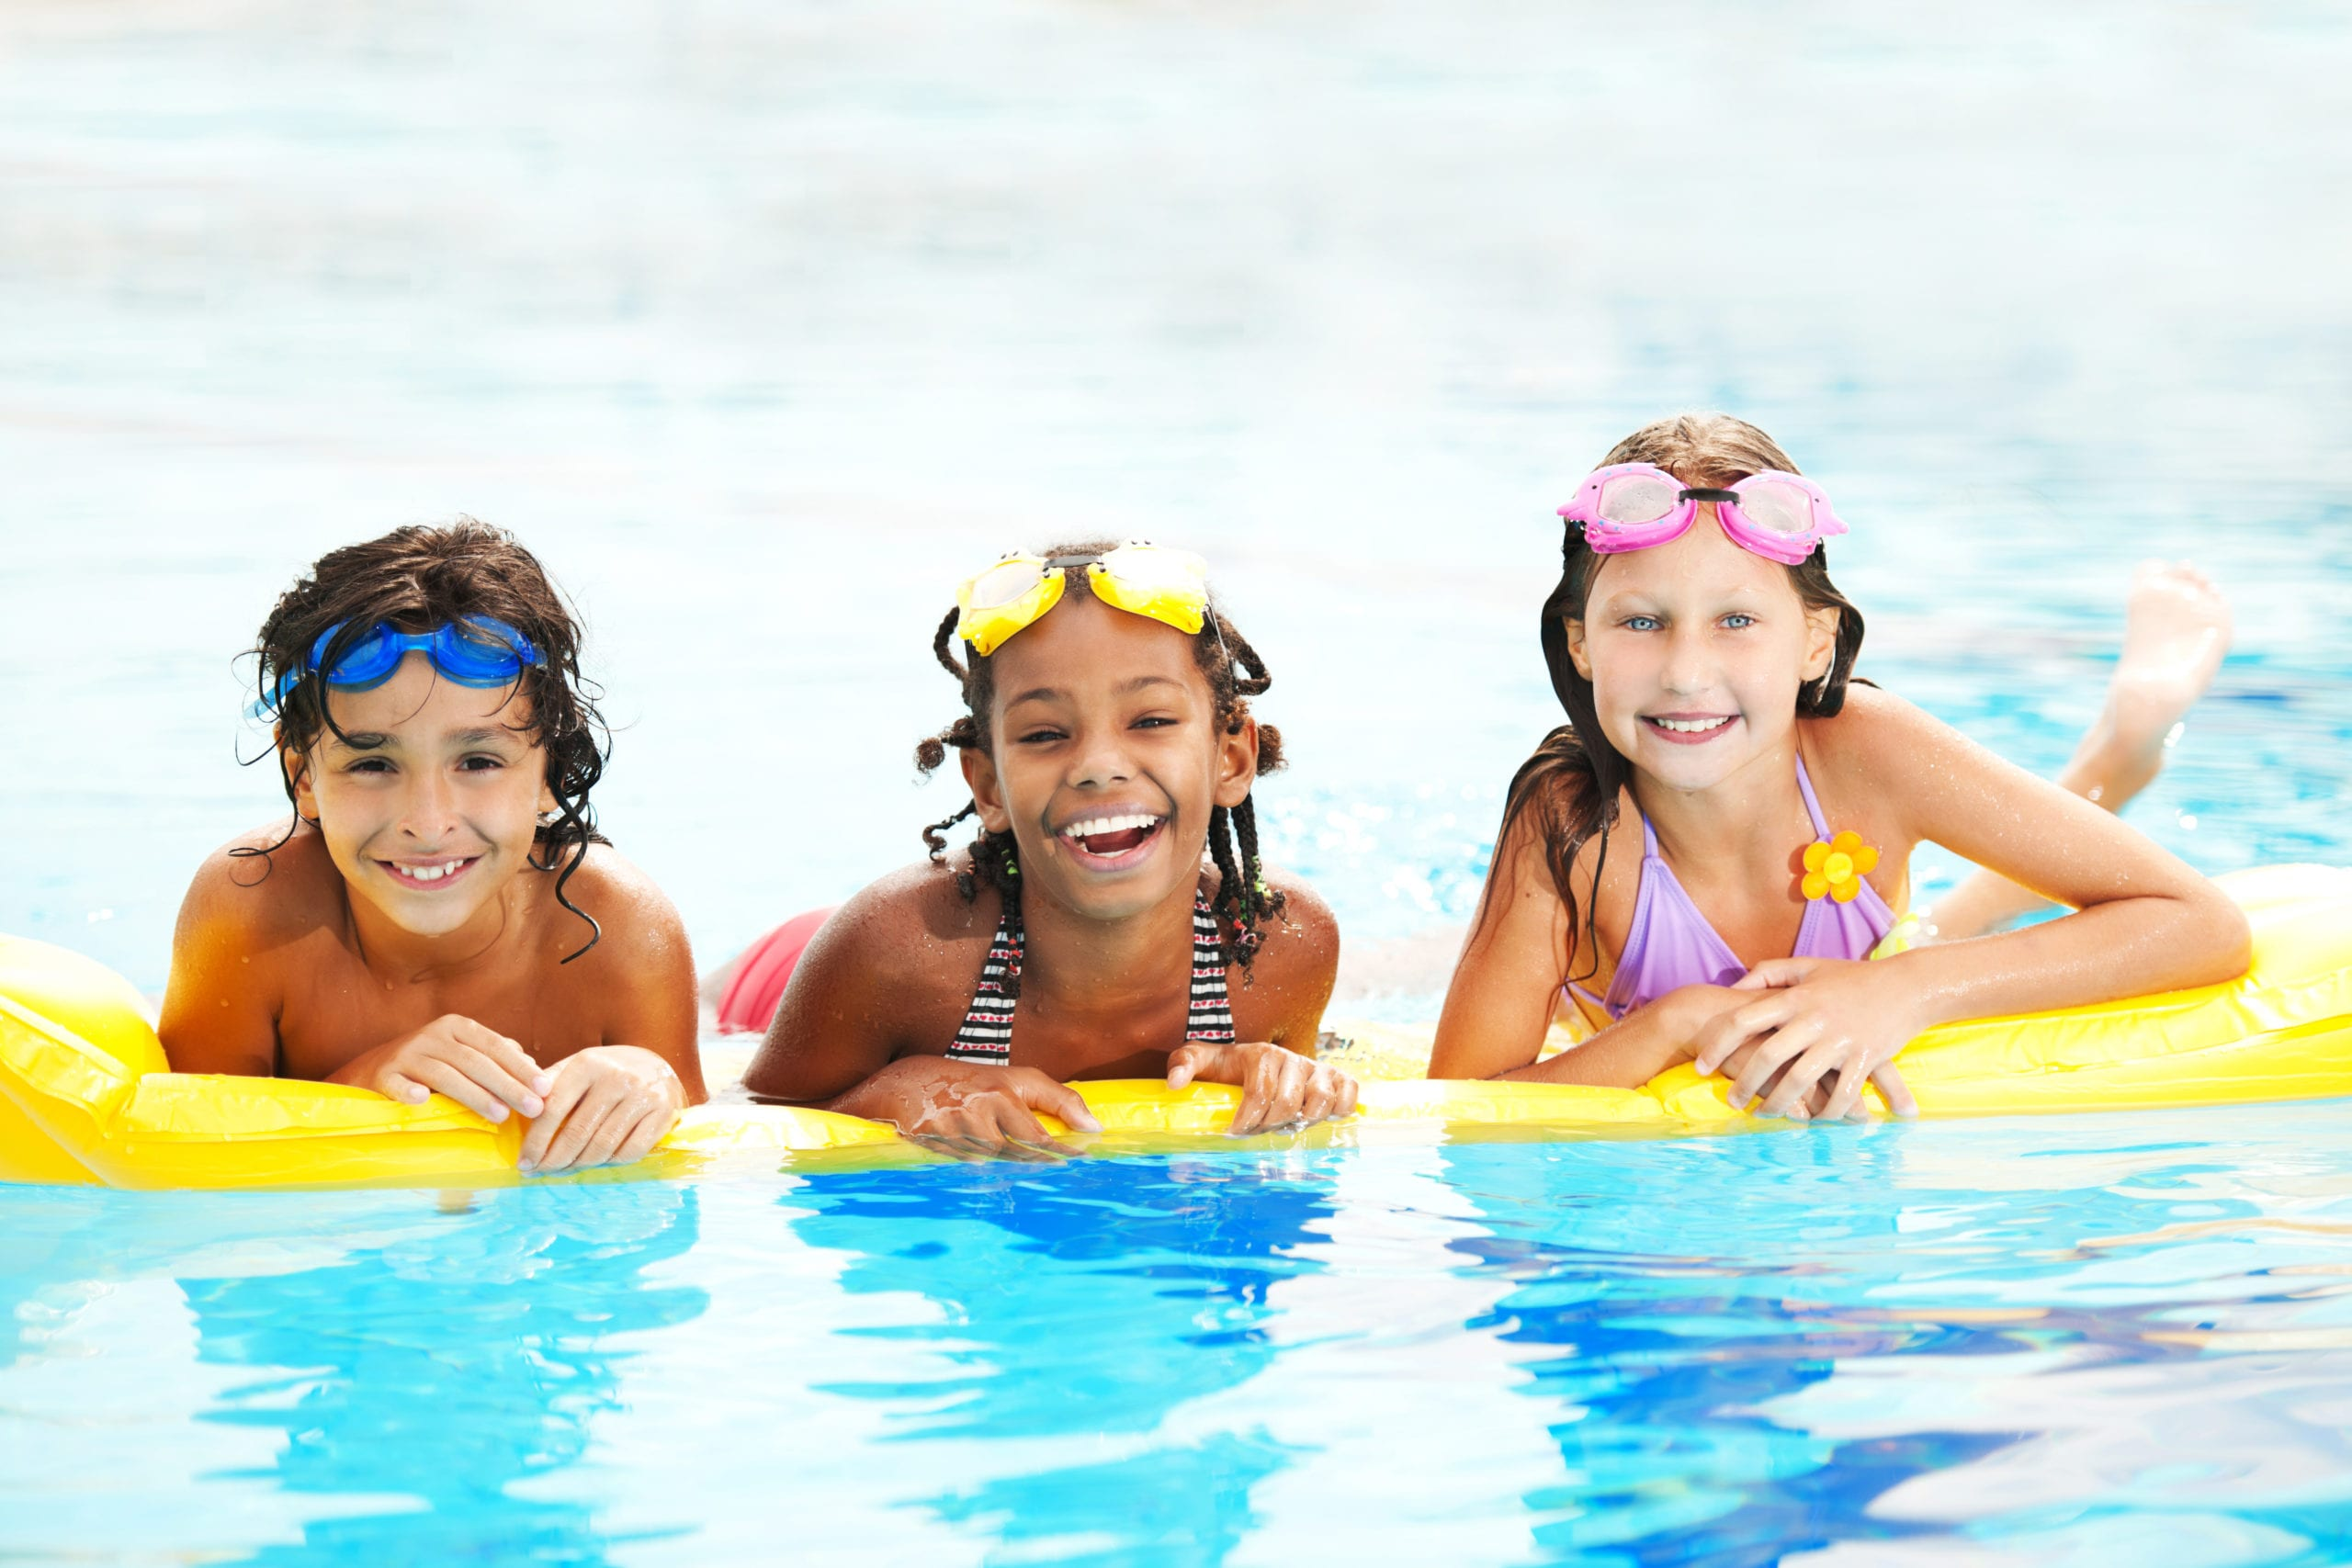 Swim Lessons- RWJ RAHWAY FITNESS & WELLNESS AT CARTERET